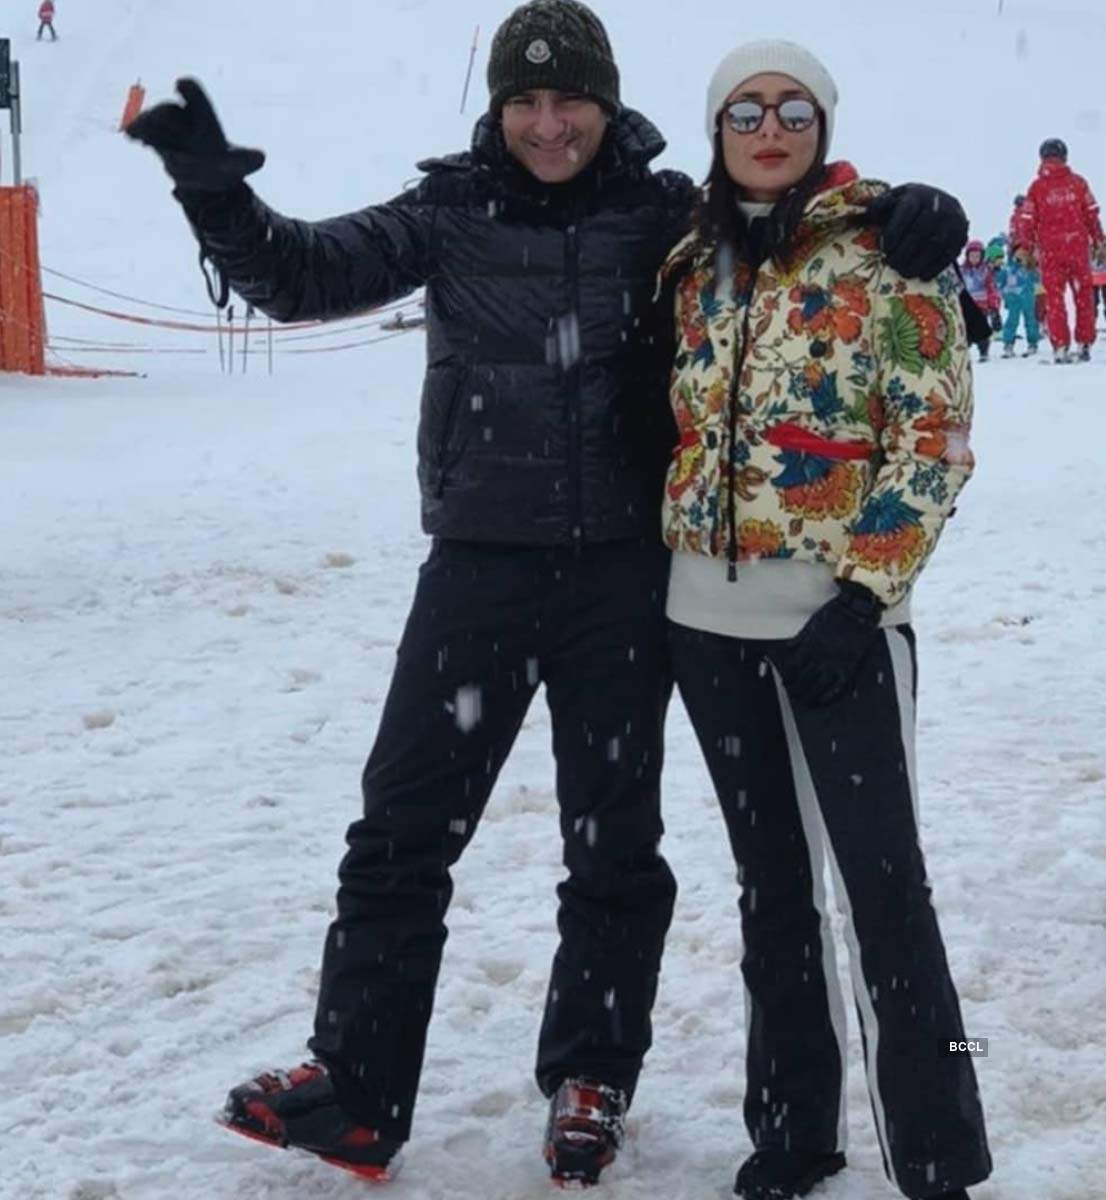 Kareena Kapoor and Saif Ali Khan's holiday pictures from Switzerland go viral